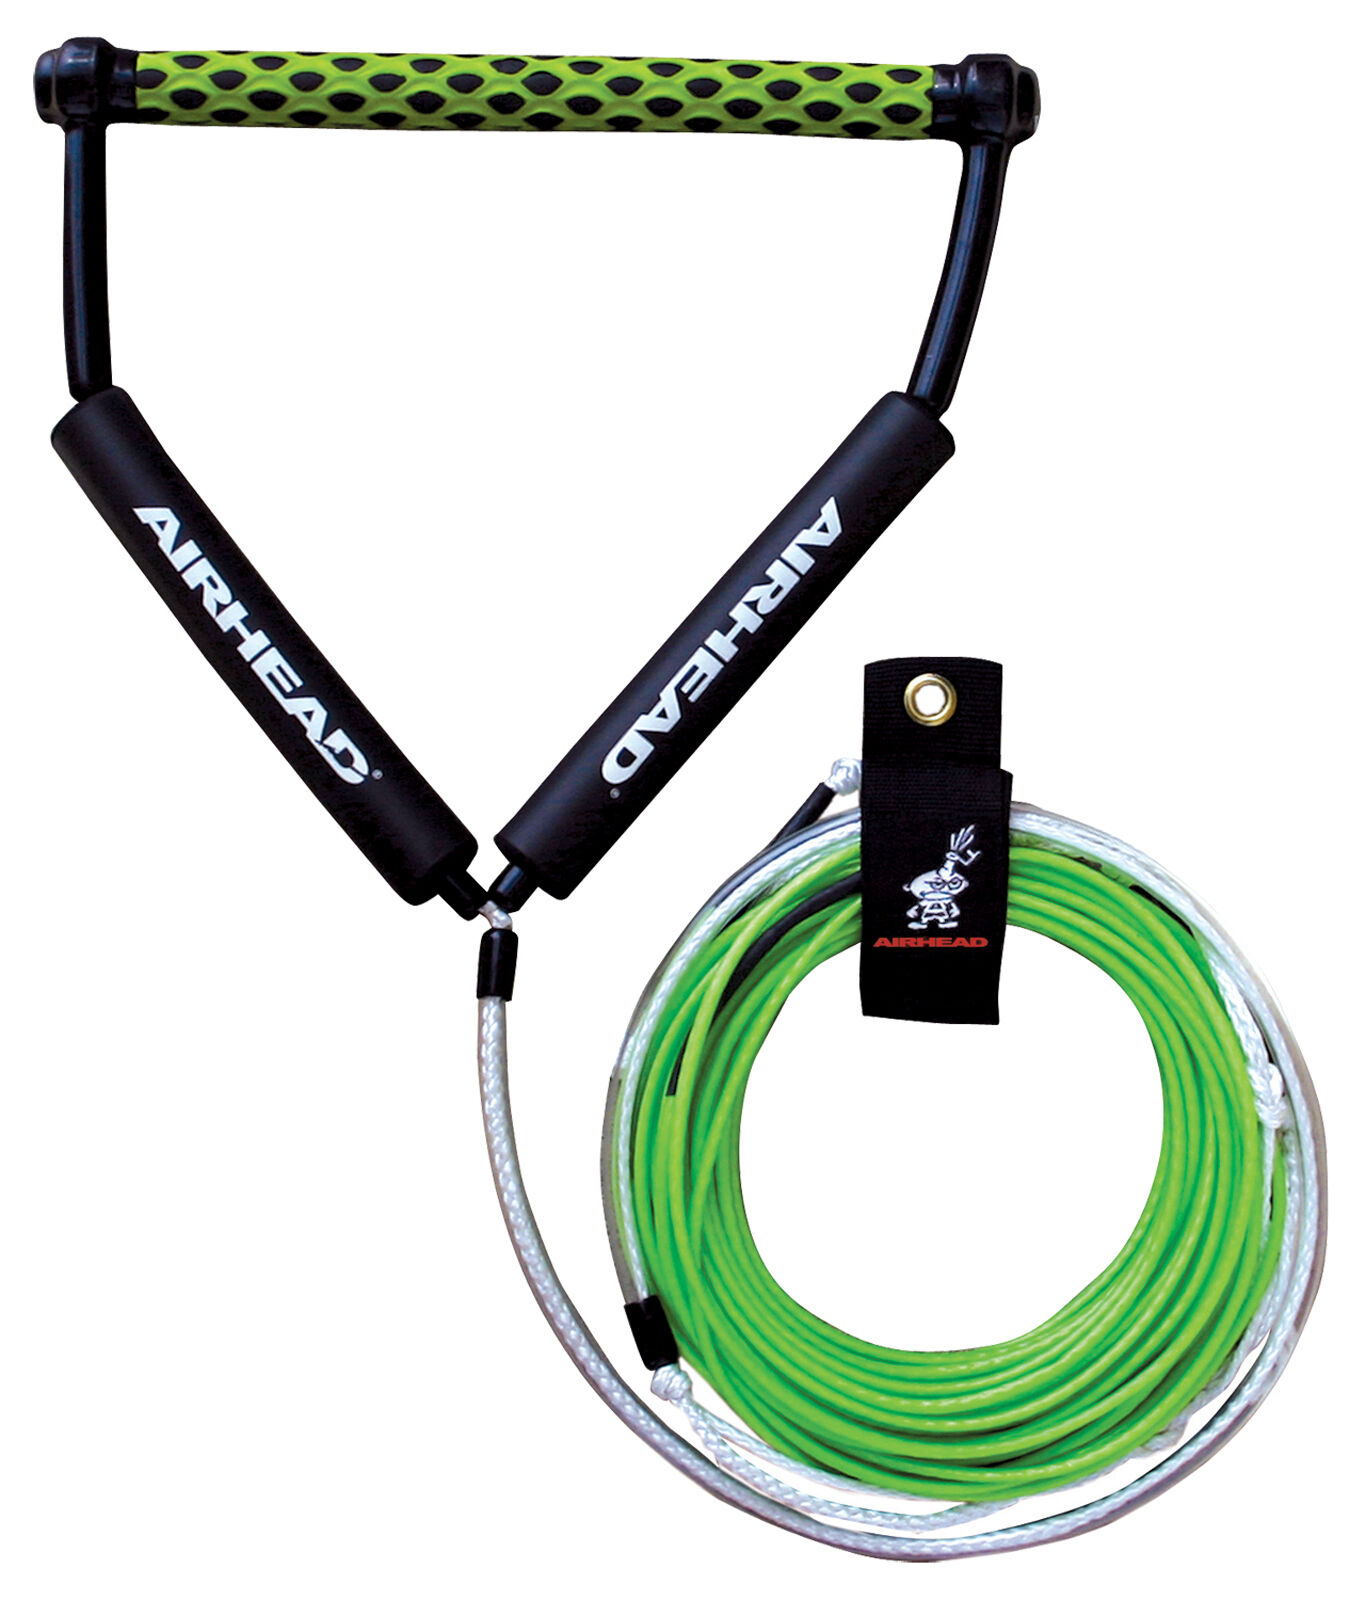 Airhead Spectra Thermal Waterski Wakeboard Ski Rope 4 Section 70' c w rope tidy